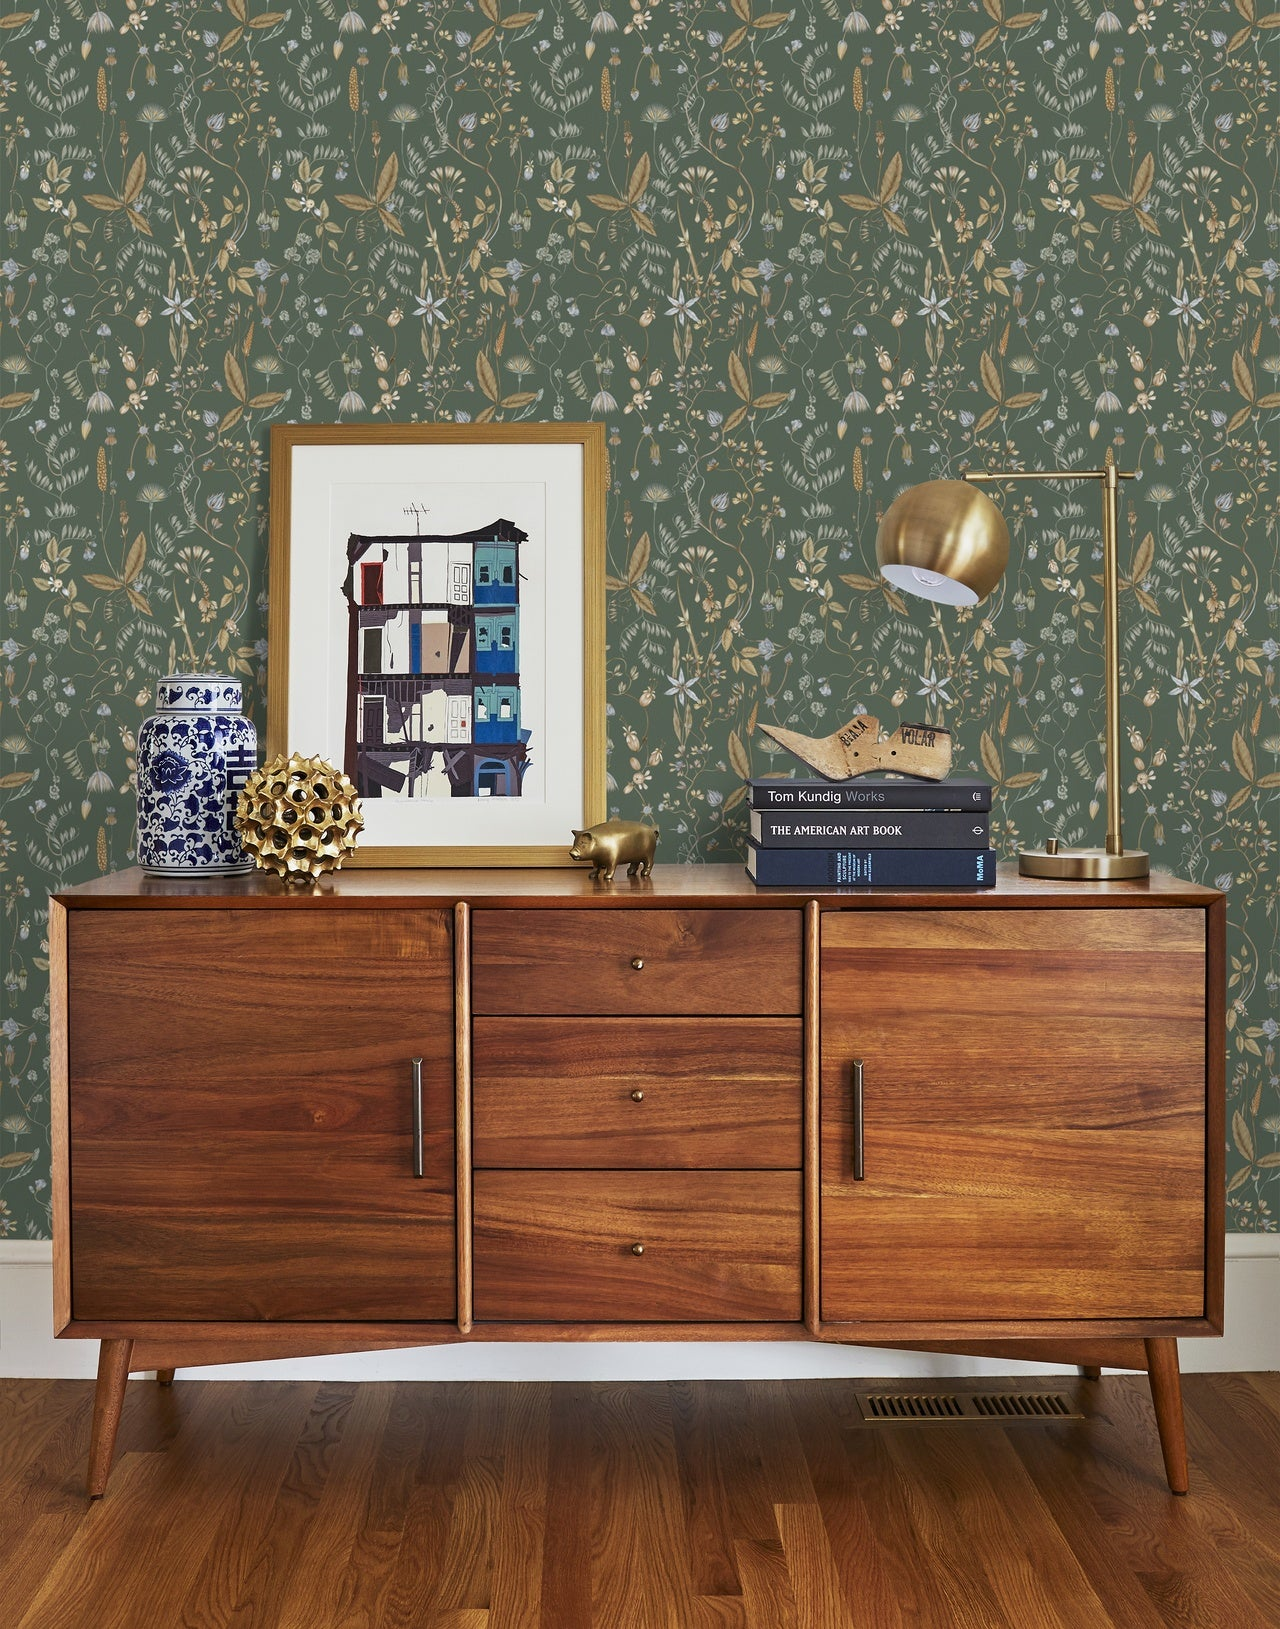 Sonoma Fern wallpaper | Lisel Jane Ashlock collection | modern floral wallpapers and murals | Hygge & West